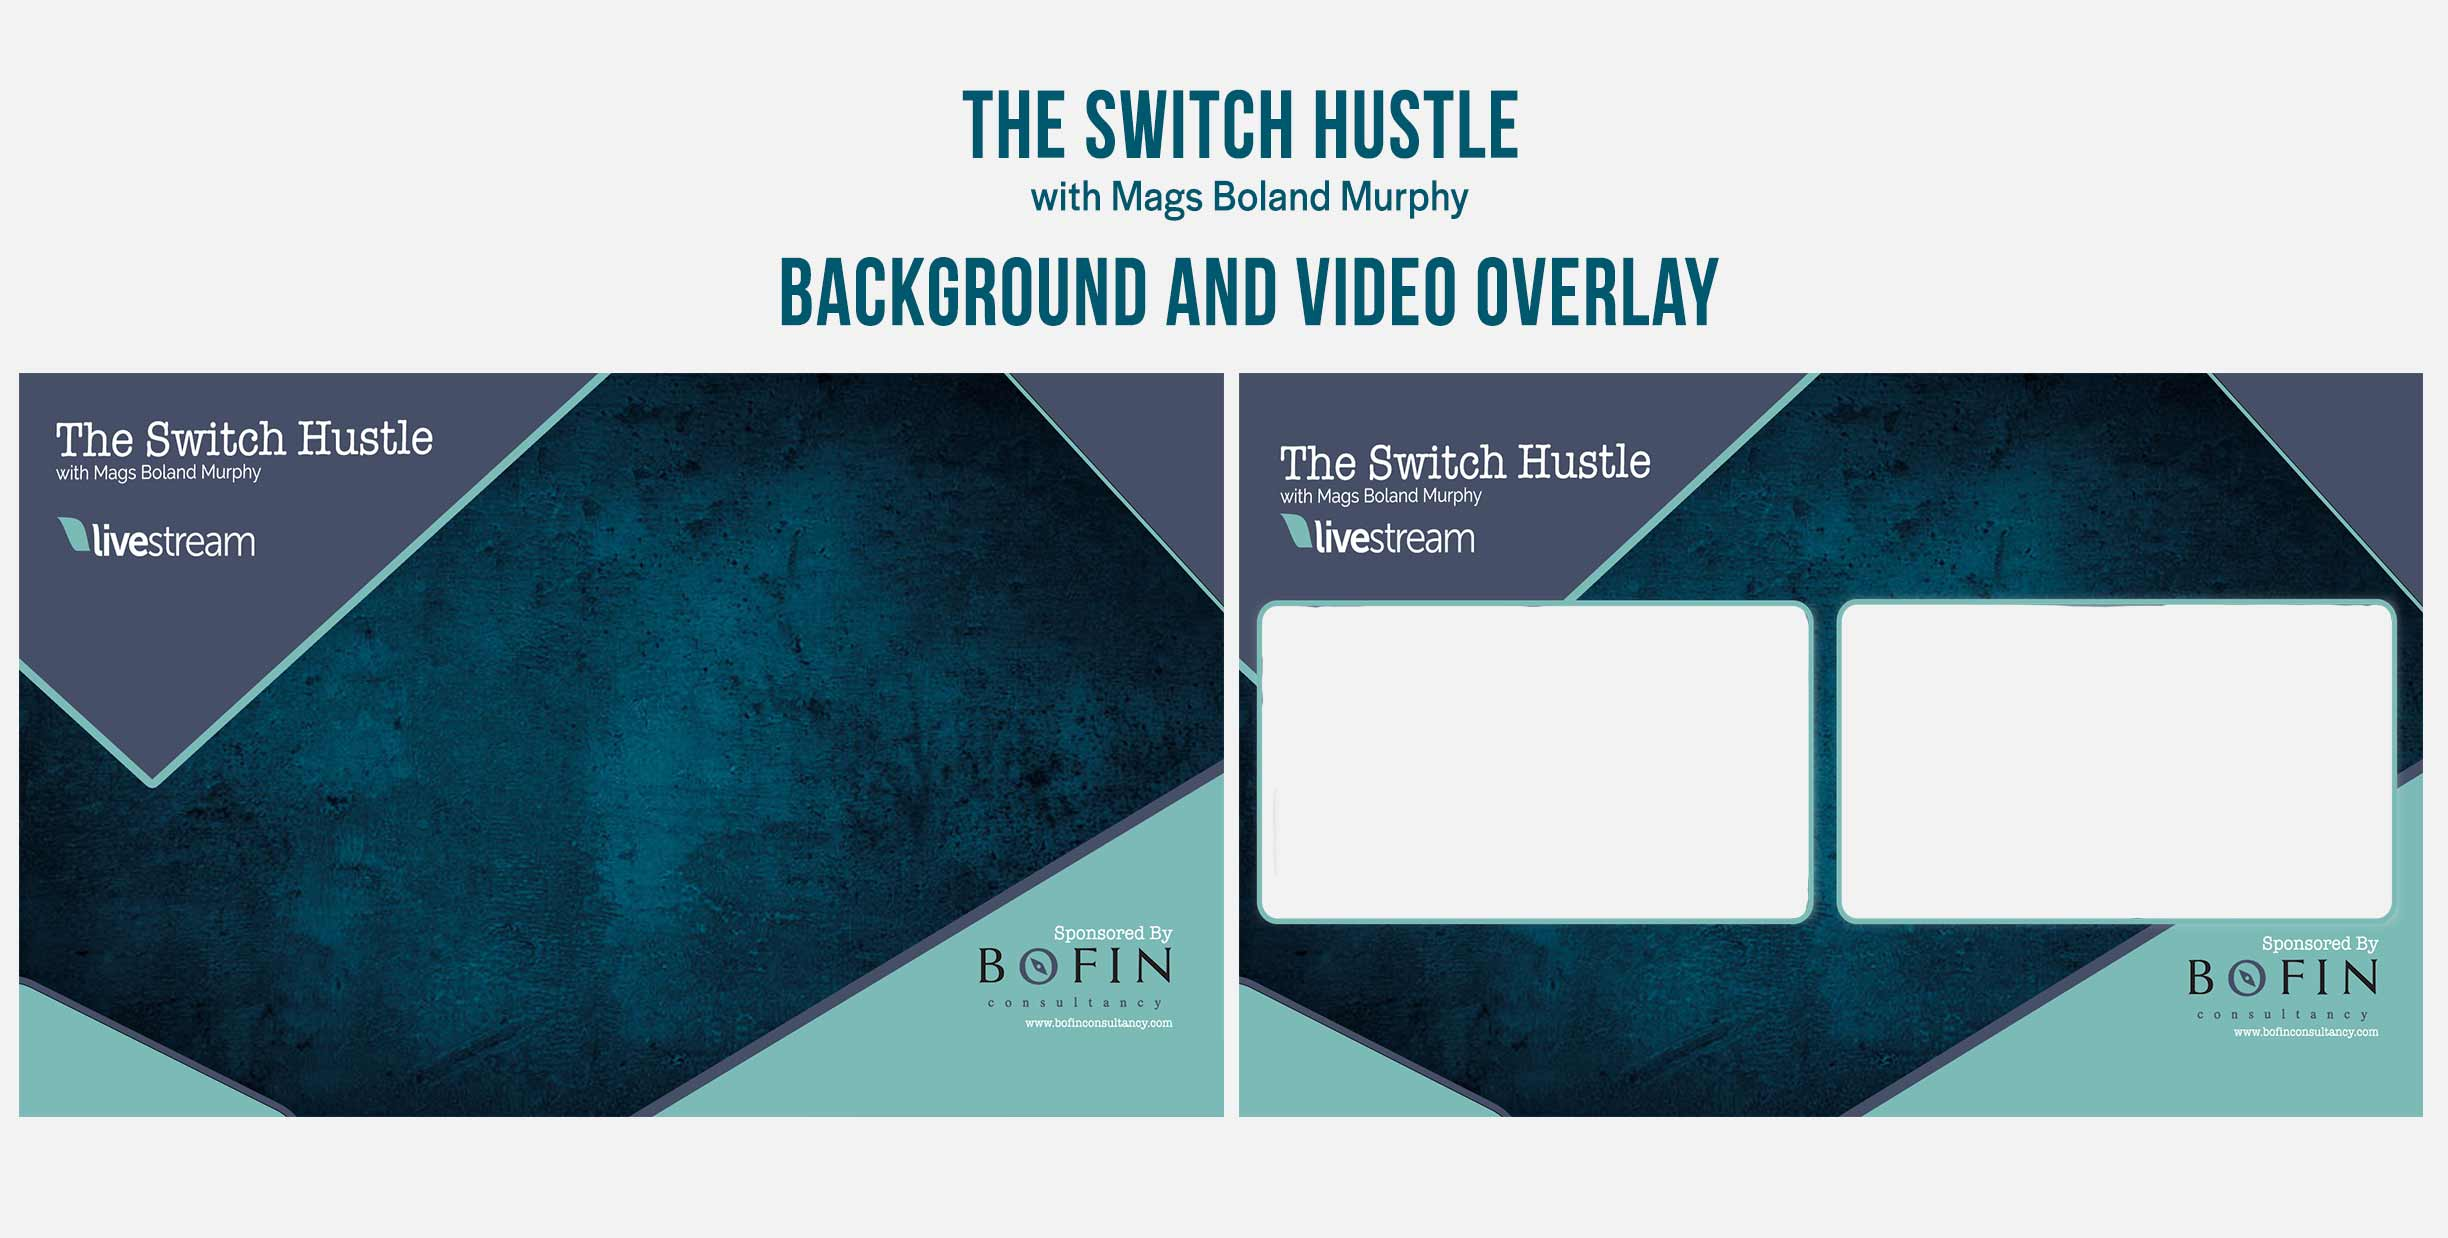 The Switch Hustle with Mags Boland MurphyGraphic Design Backgrounds and Overlays from Kompass Media Dublin Ireland